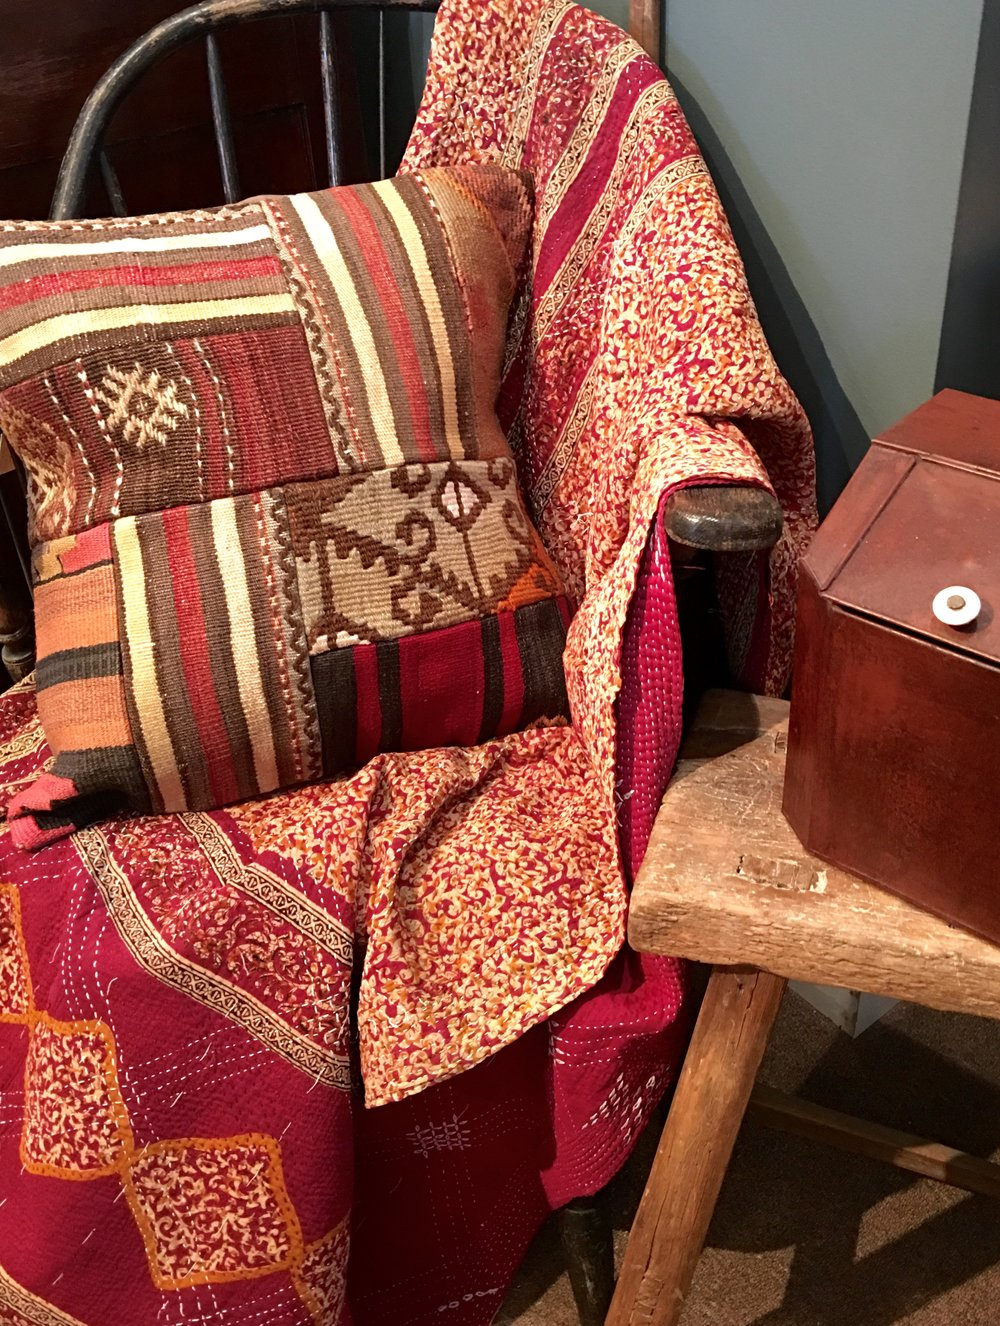 Colorful Kanthas and Kilim covered cushions brighten up any room!